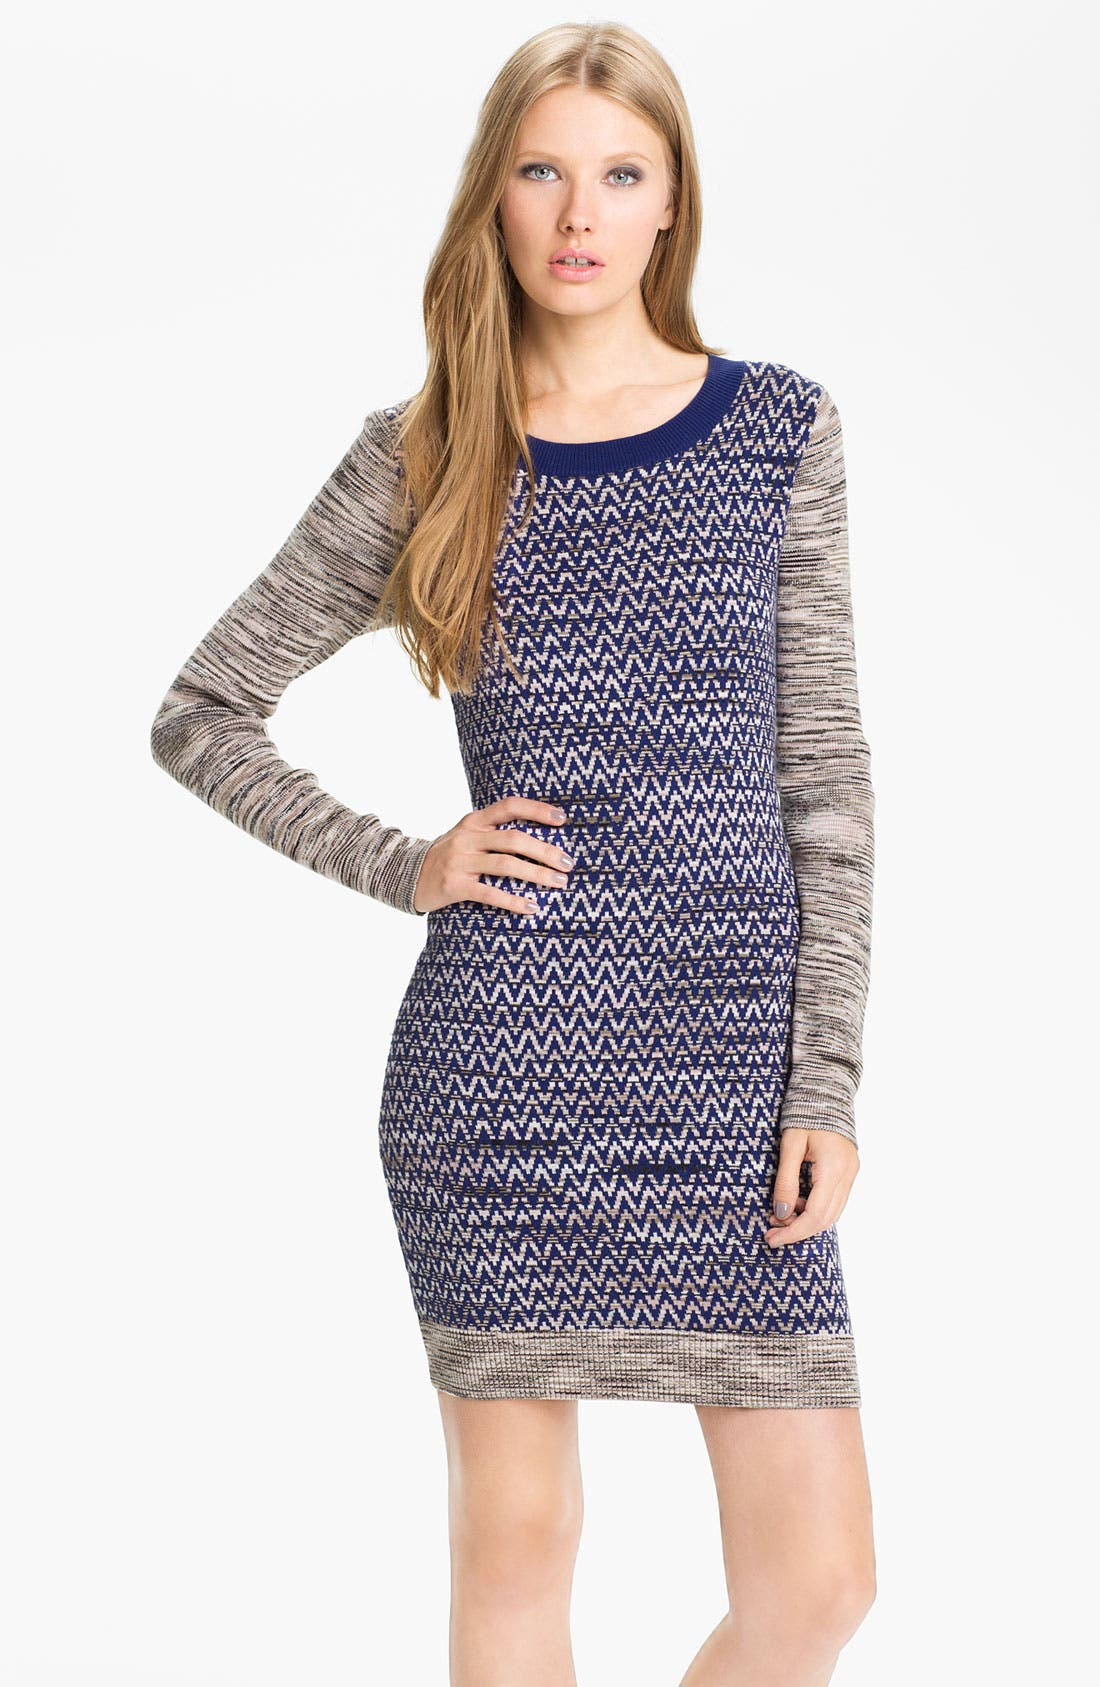 Alternate Image 1 Selected - French Connection 'Space Baby Knits' Chevron Sweater Dress